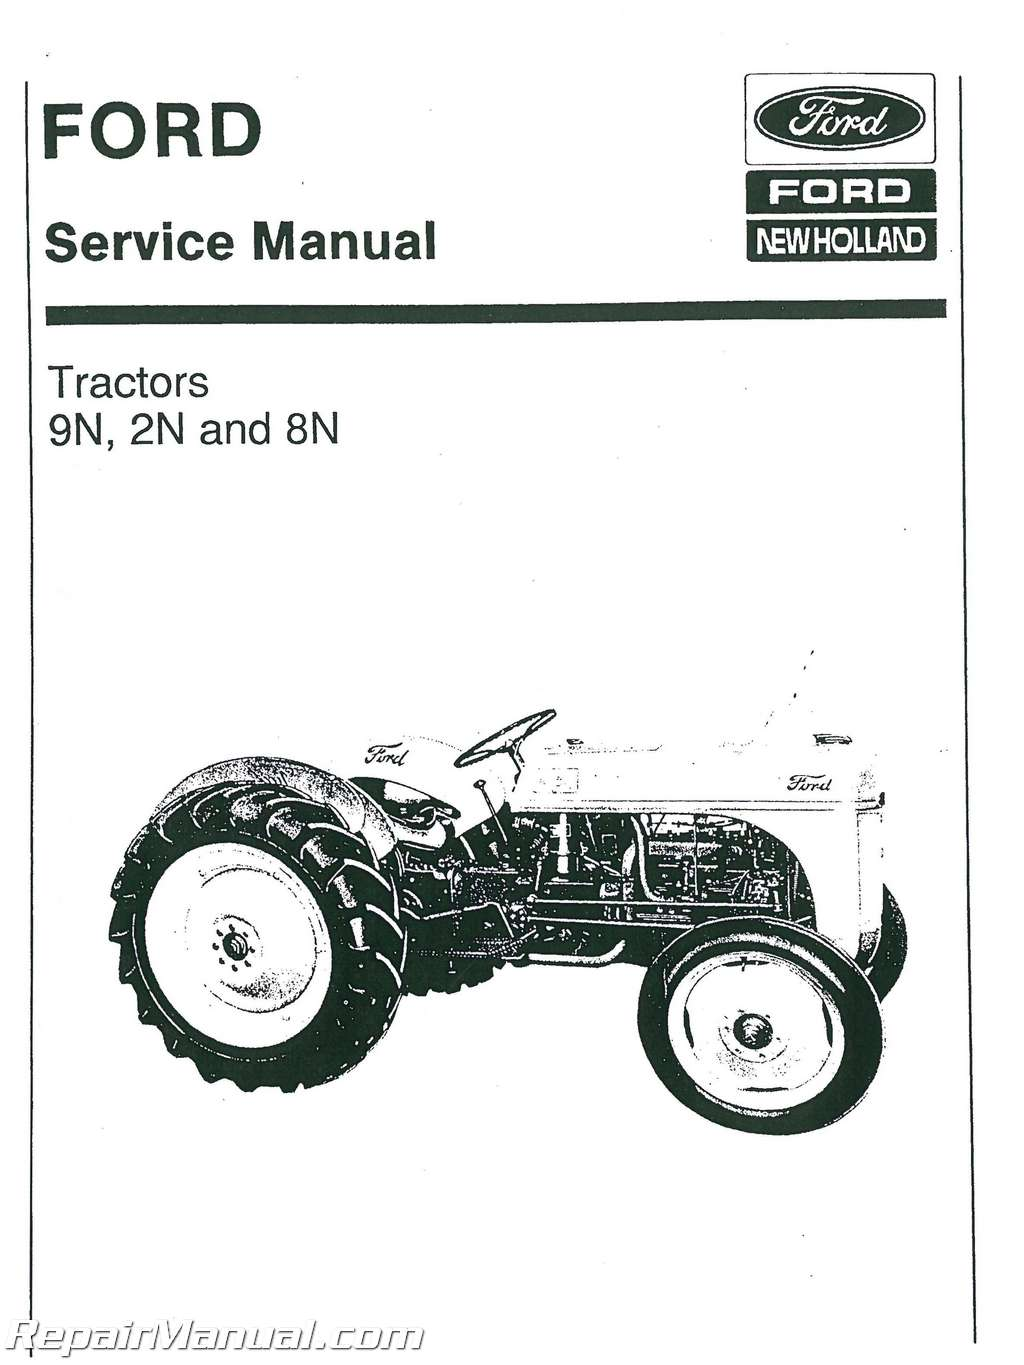 Ford 2n Manual Auto Electrical Wiring Diagram 3910 Tractor 8n And 9n Service